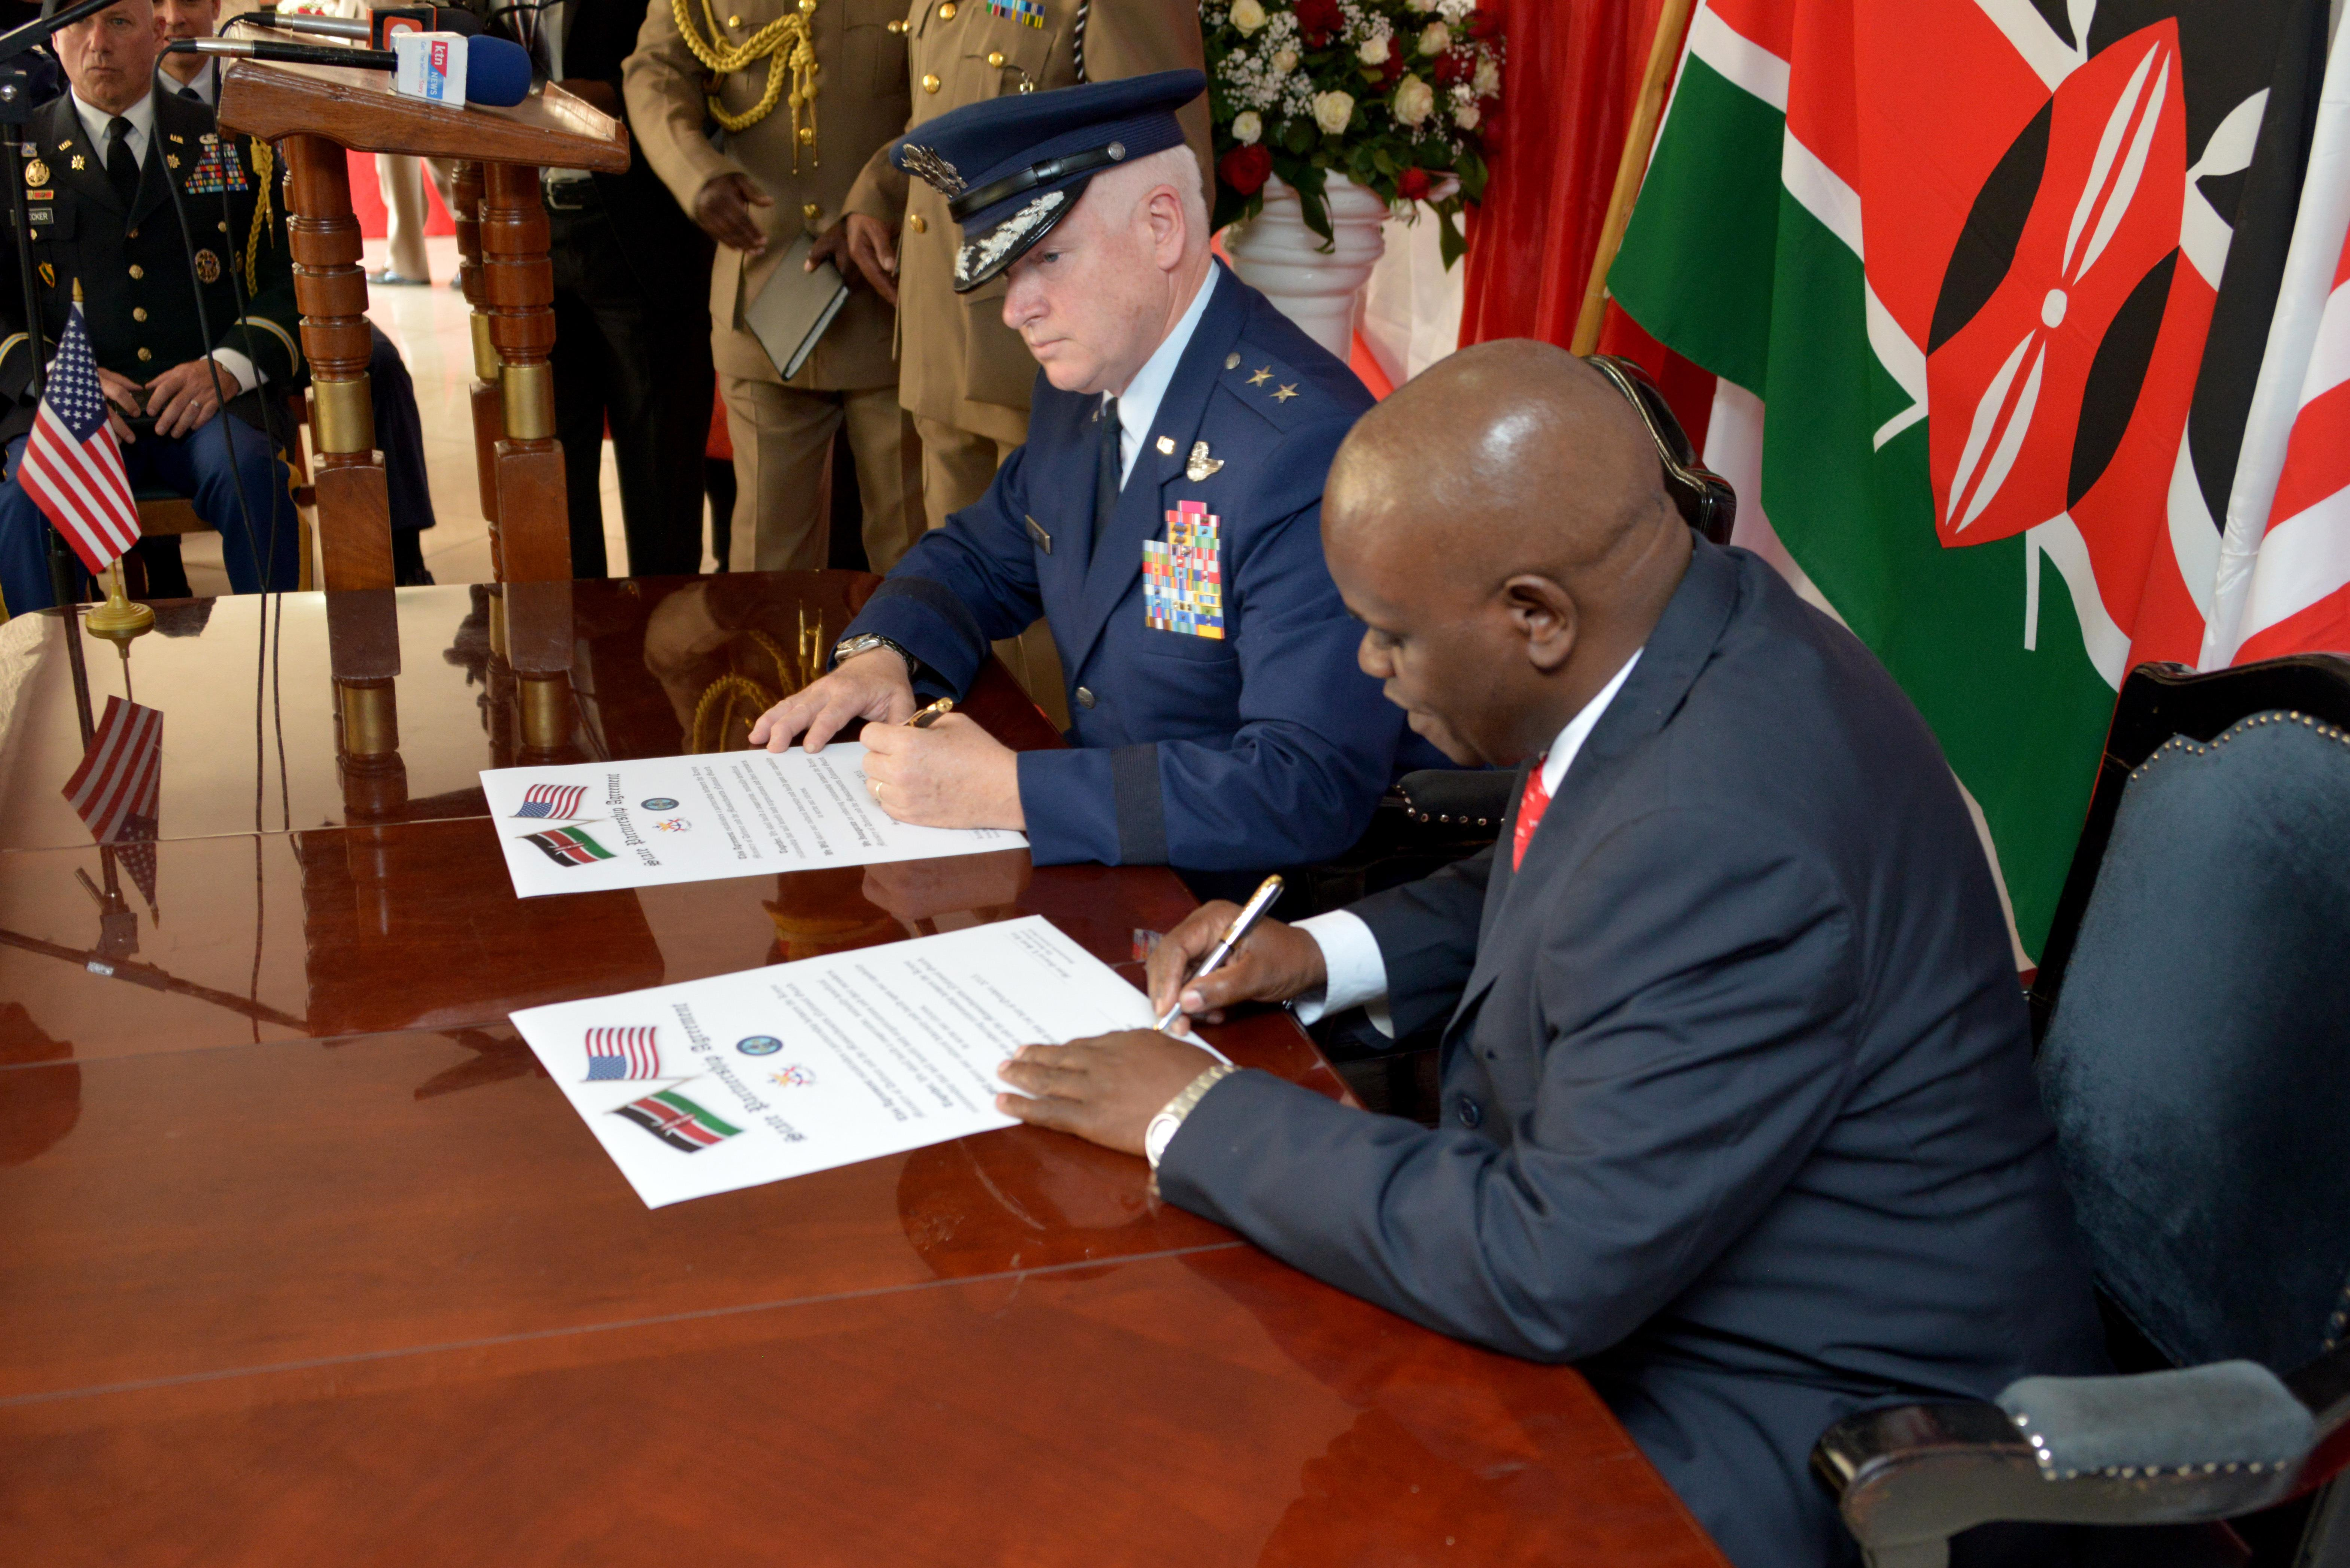 Maj. Gen. L. Scott Rice, the adjutant general, Massachusetts National Guard, and Kiritu Miano Wamae, acting principal secretary, Kenya Ministry of Defence, sign the state partnership agreement  between the Republic of Kenya and the Massachusetts National Guard during a ceremony held at the Ministry of Defence here, Oct. 1, 2015. (U.S. Amy National Guard Photo by 1st Sgt. Don Veitch/Released)